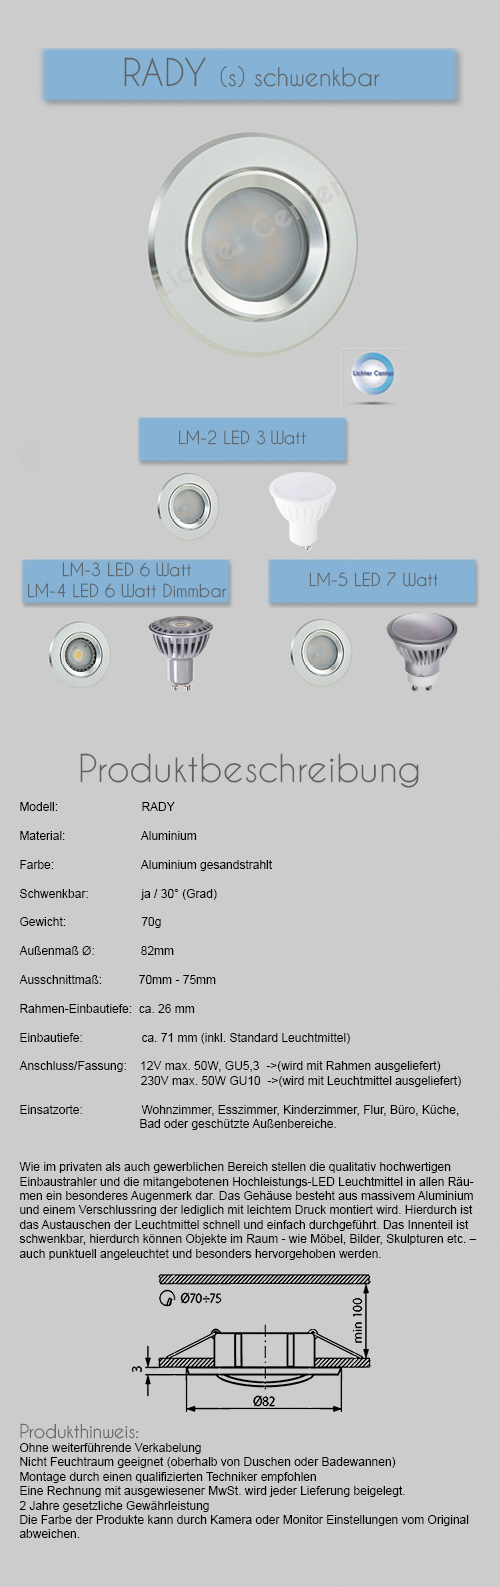 led aufbaustrahler aufbauspots w rfel einabaustrahler deckenspot gu10 230v cube ebay. Black Bedroom Furniture Sets. Home Design Ideas